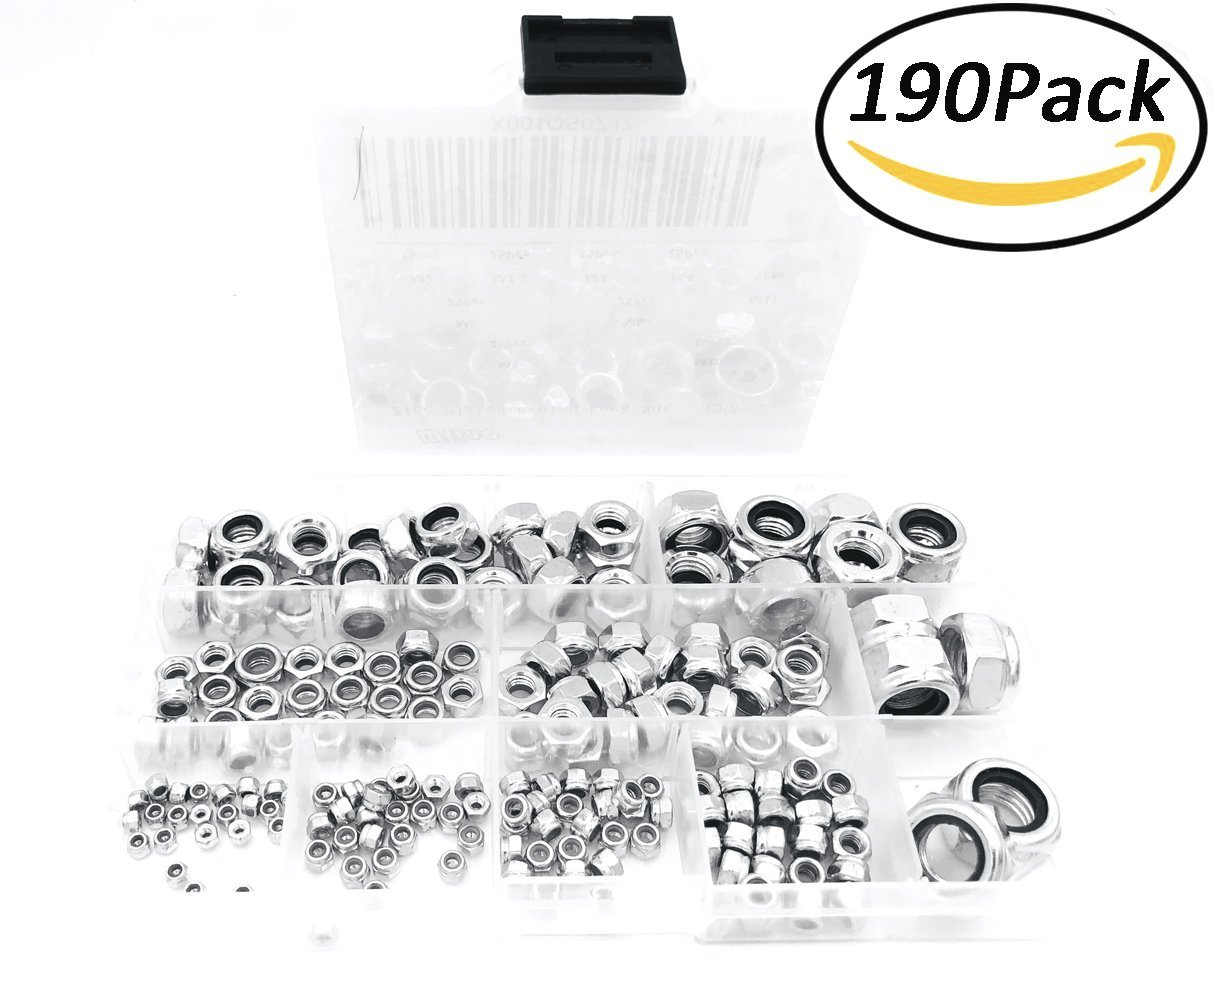 100-Pack The Hillman Group 180397 1 1 1 5//16-18 Whiz Lock Nut